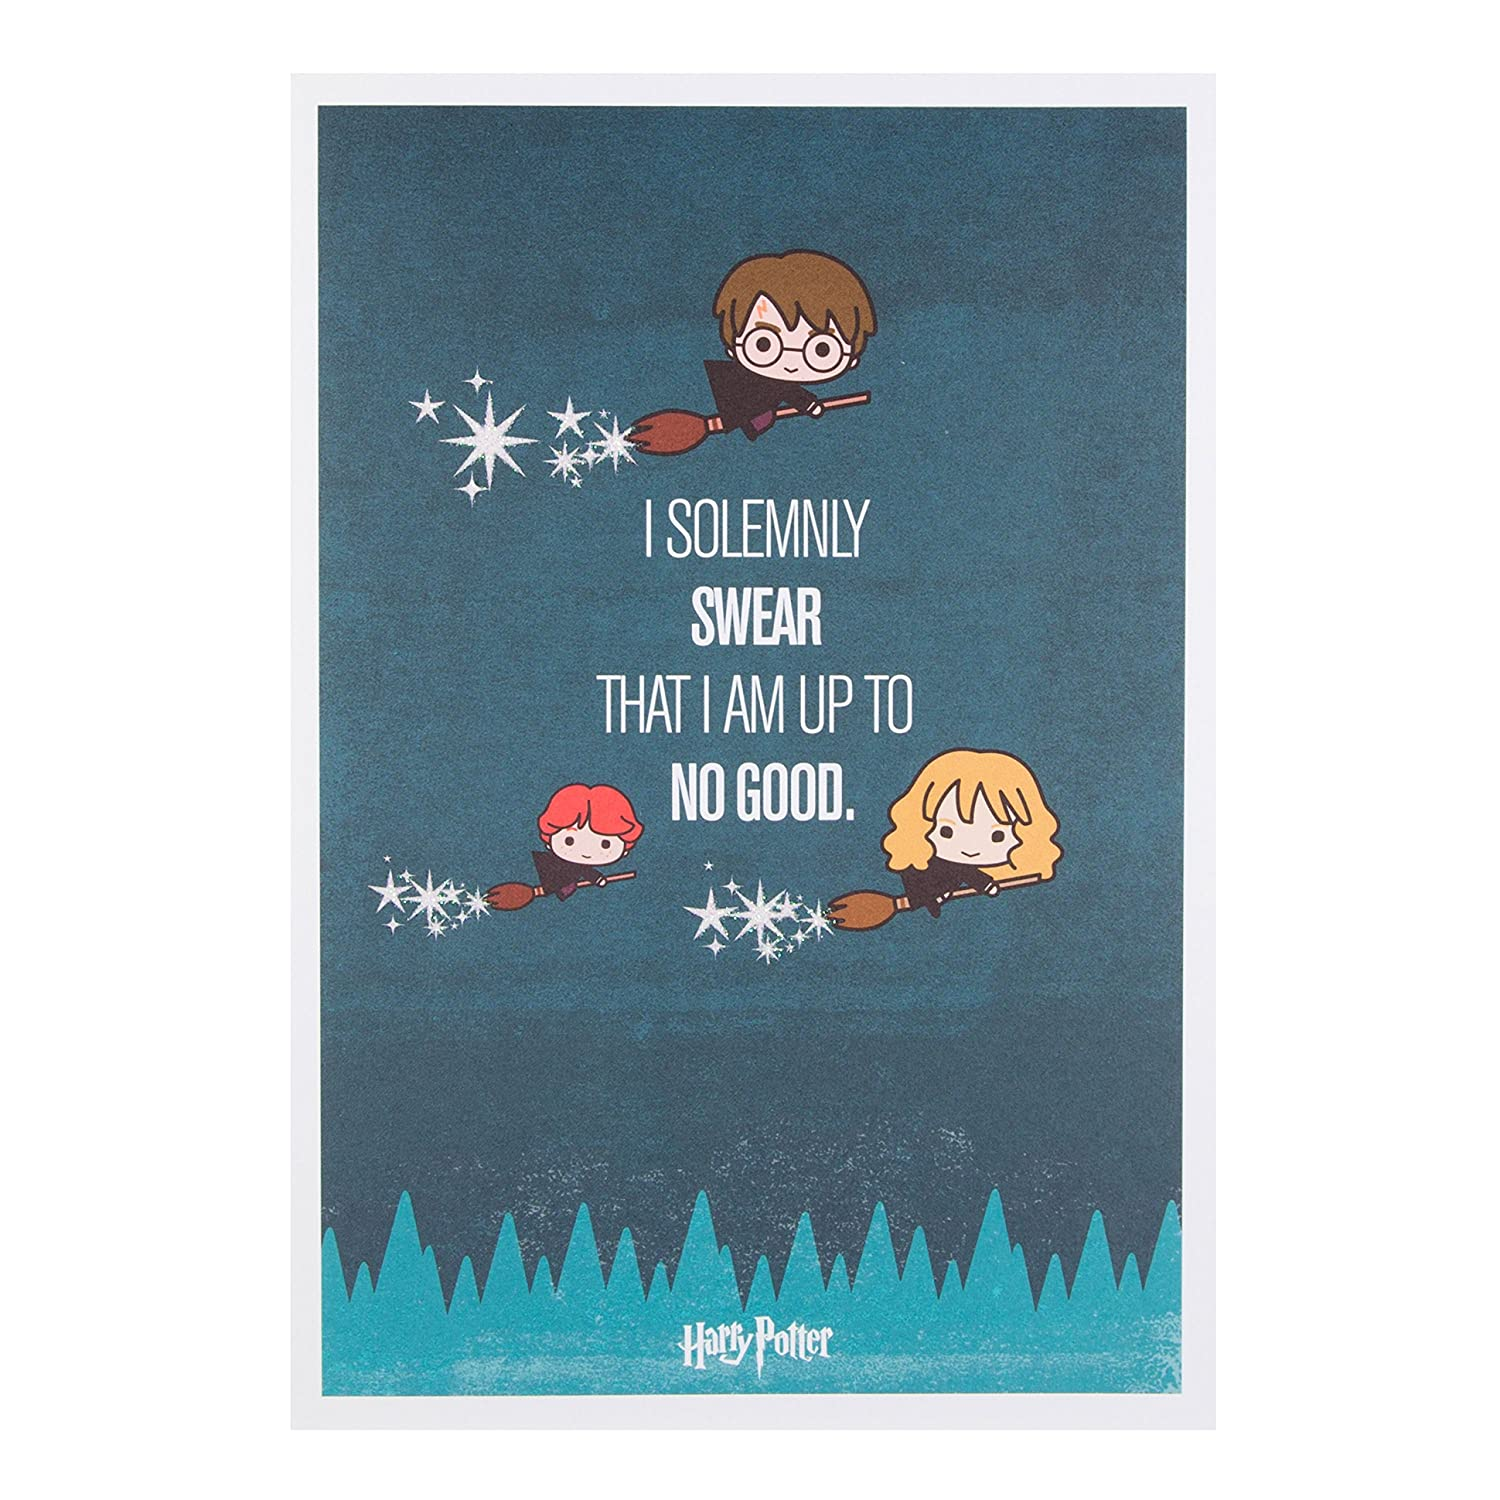 Harry Potter I Solemnly Swear That Am Up To No Good Birthday Card Amazonca Office Products